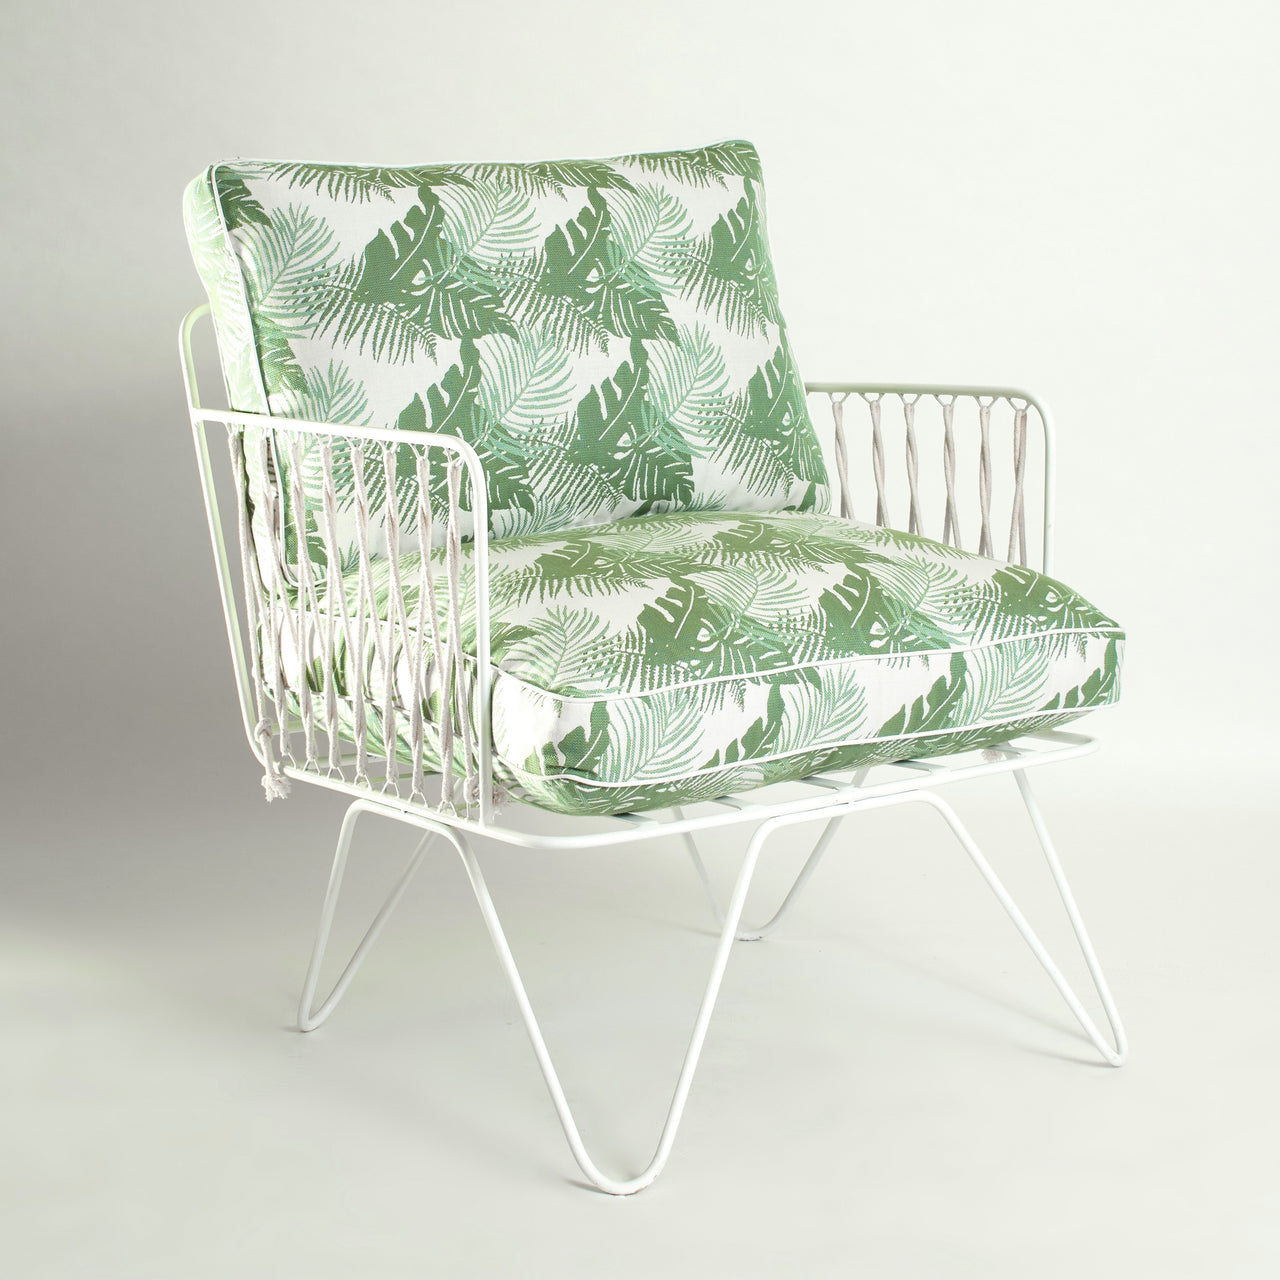 Outdoor Croisette Chair: Tropical Limited Edition